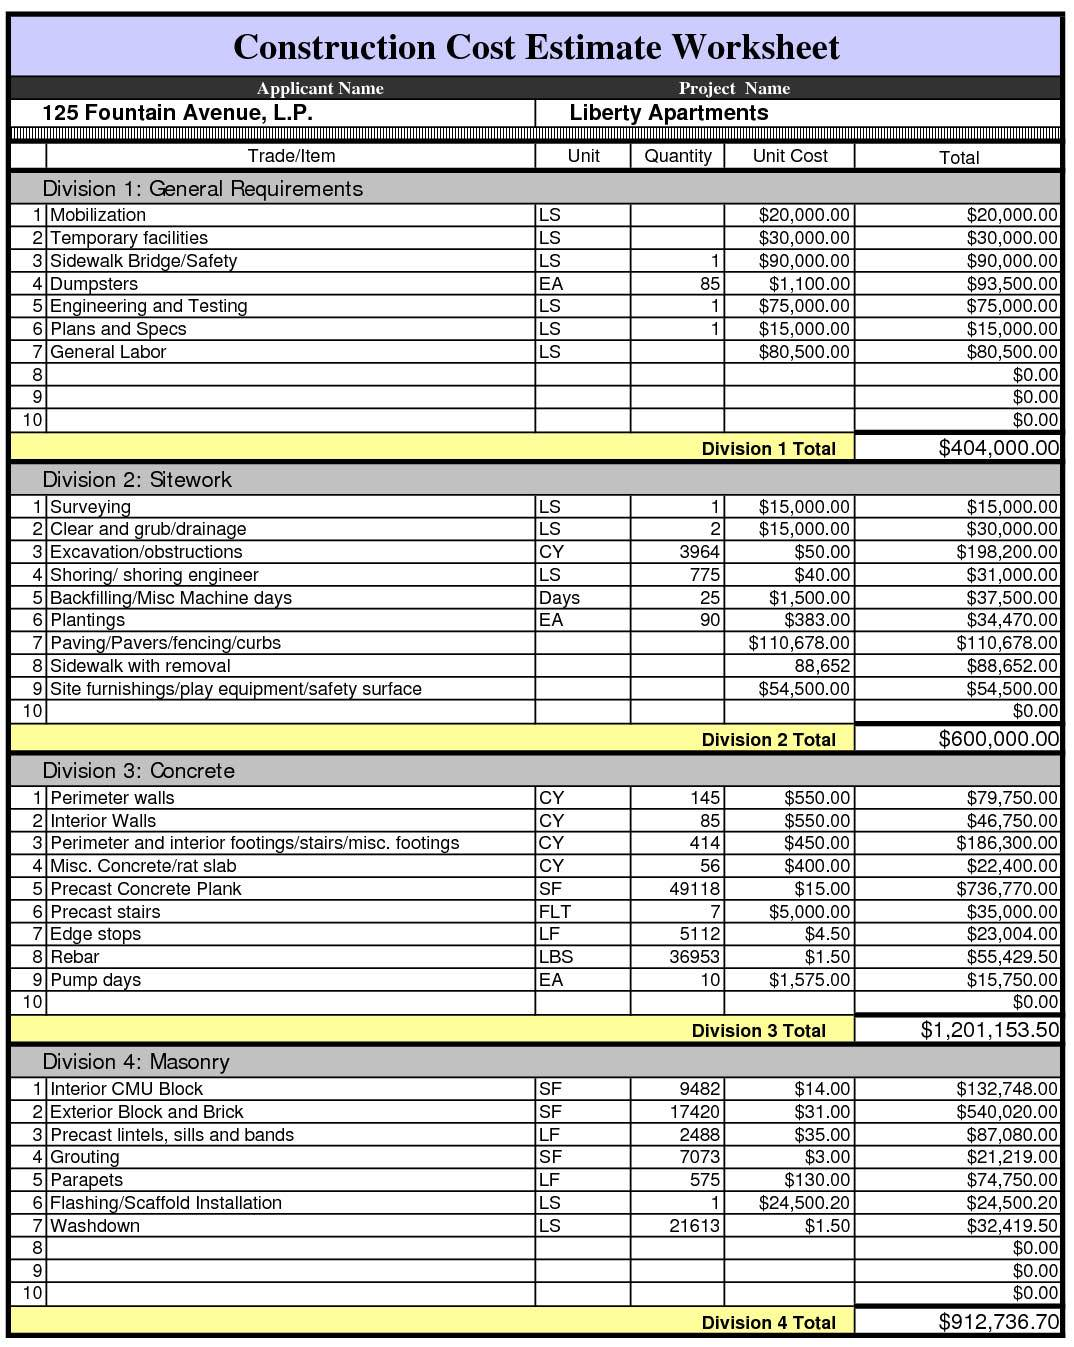 Excel Spreadsheet For Construction Estimating templates free